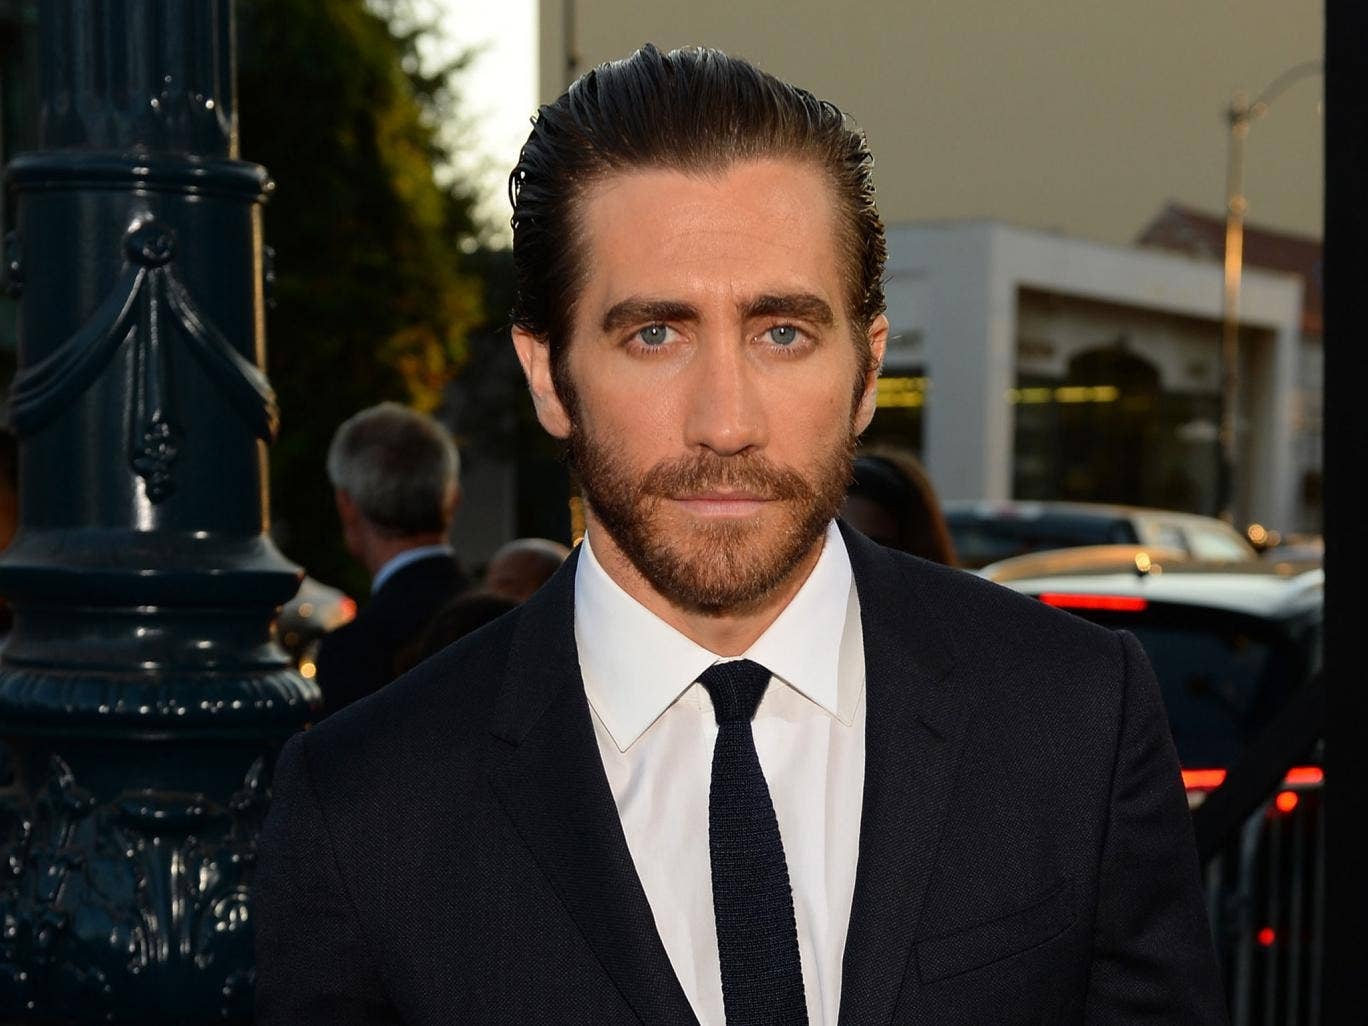 BEVERLY HILLS, CA - SEPTEMBER 12: Actor Jake Gyllenhaal attends the Warner Bros. Pictures' premiere of 'Prisoners' at the Academy of Motion Picture Arts and Sciences on September 12, 2013 in Beverly Hills, California.